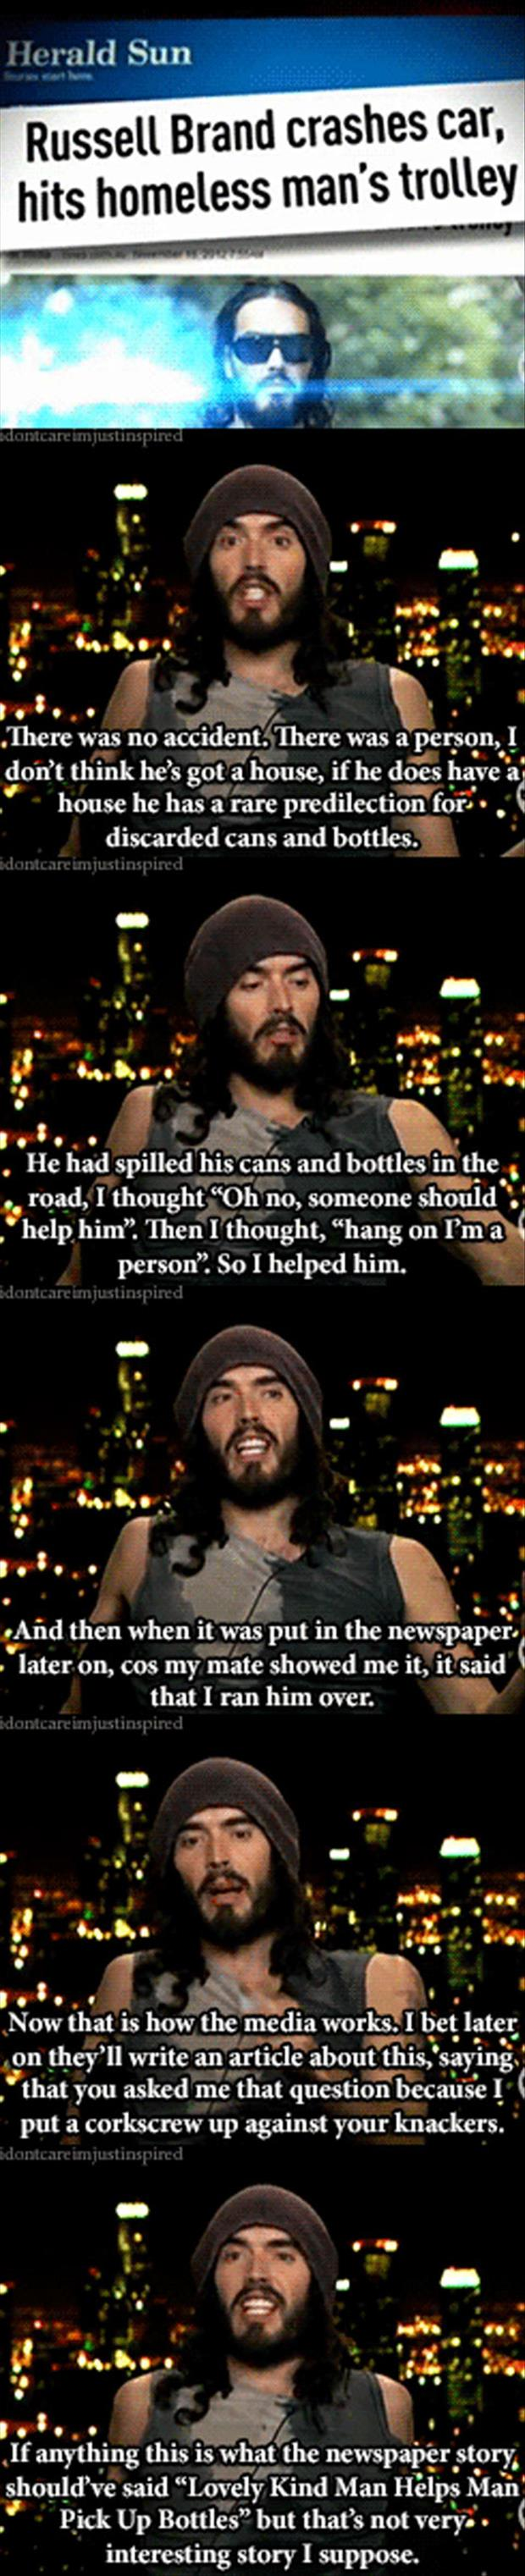 Russell brand runs over homeless man with car